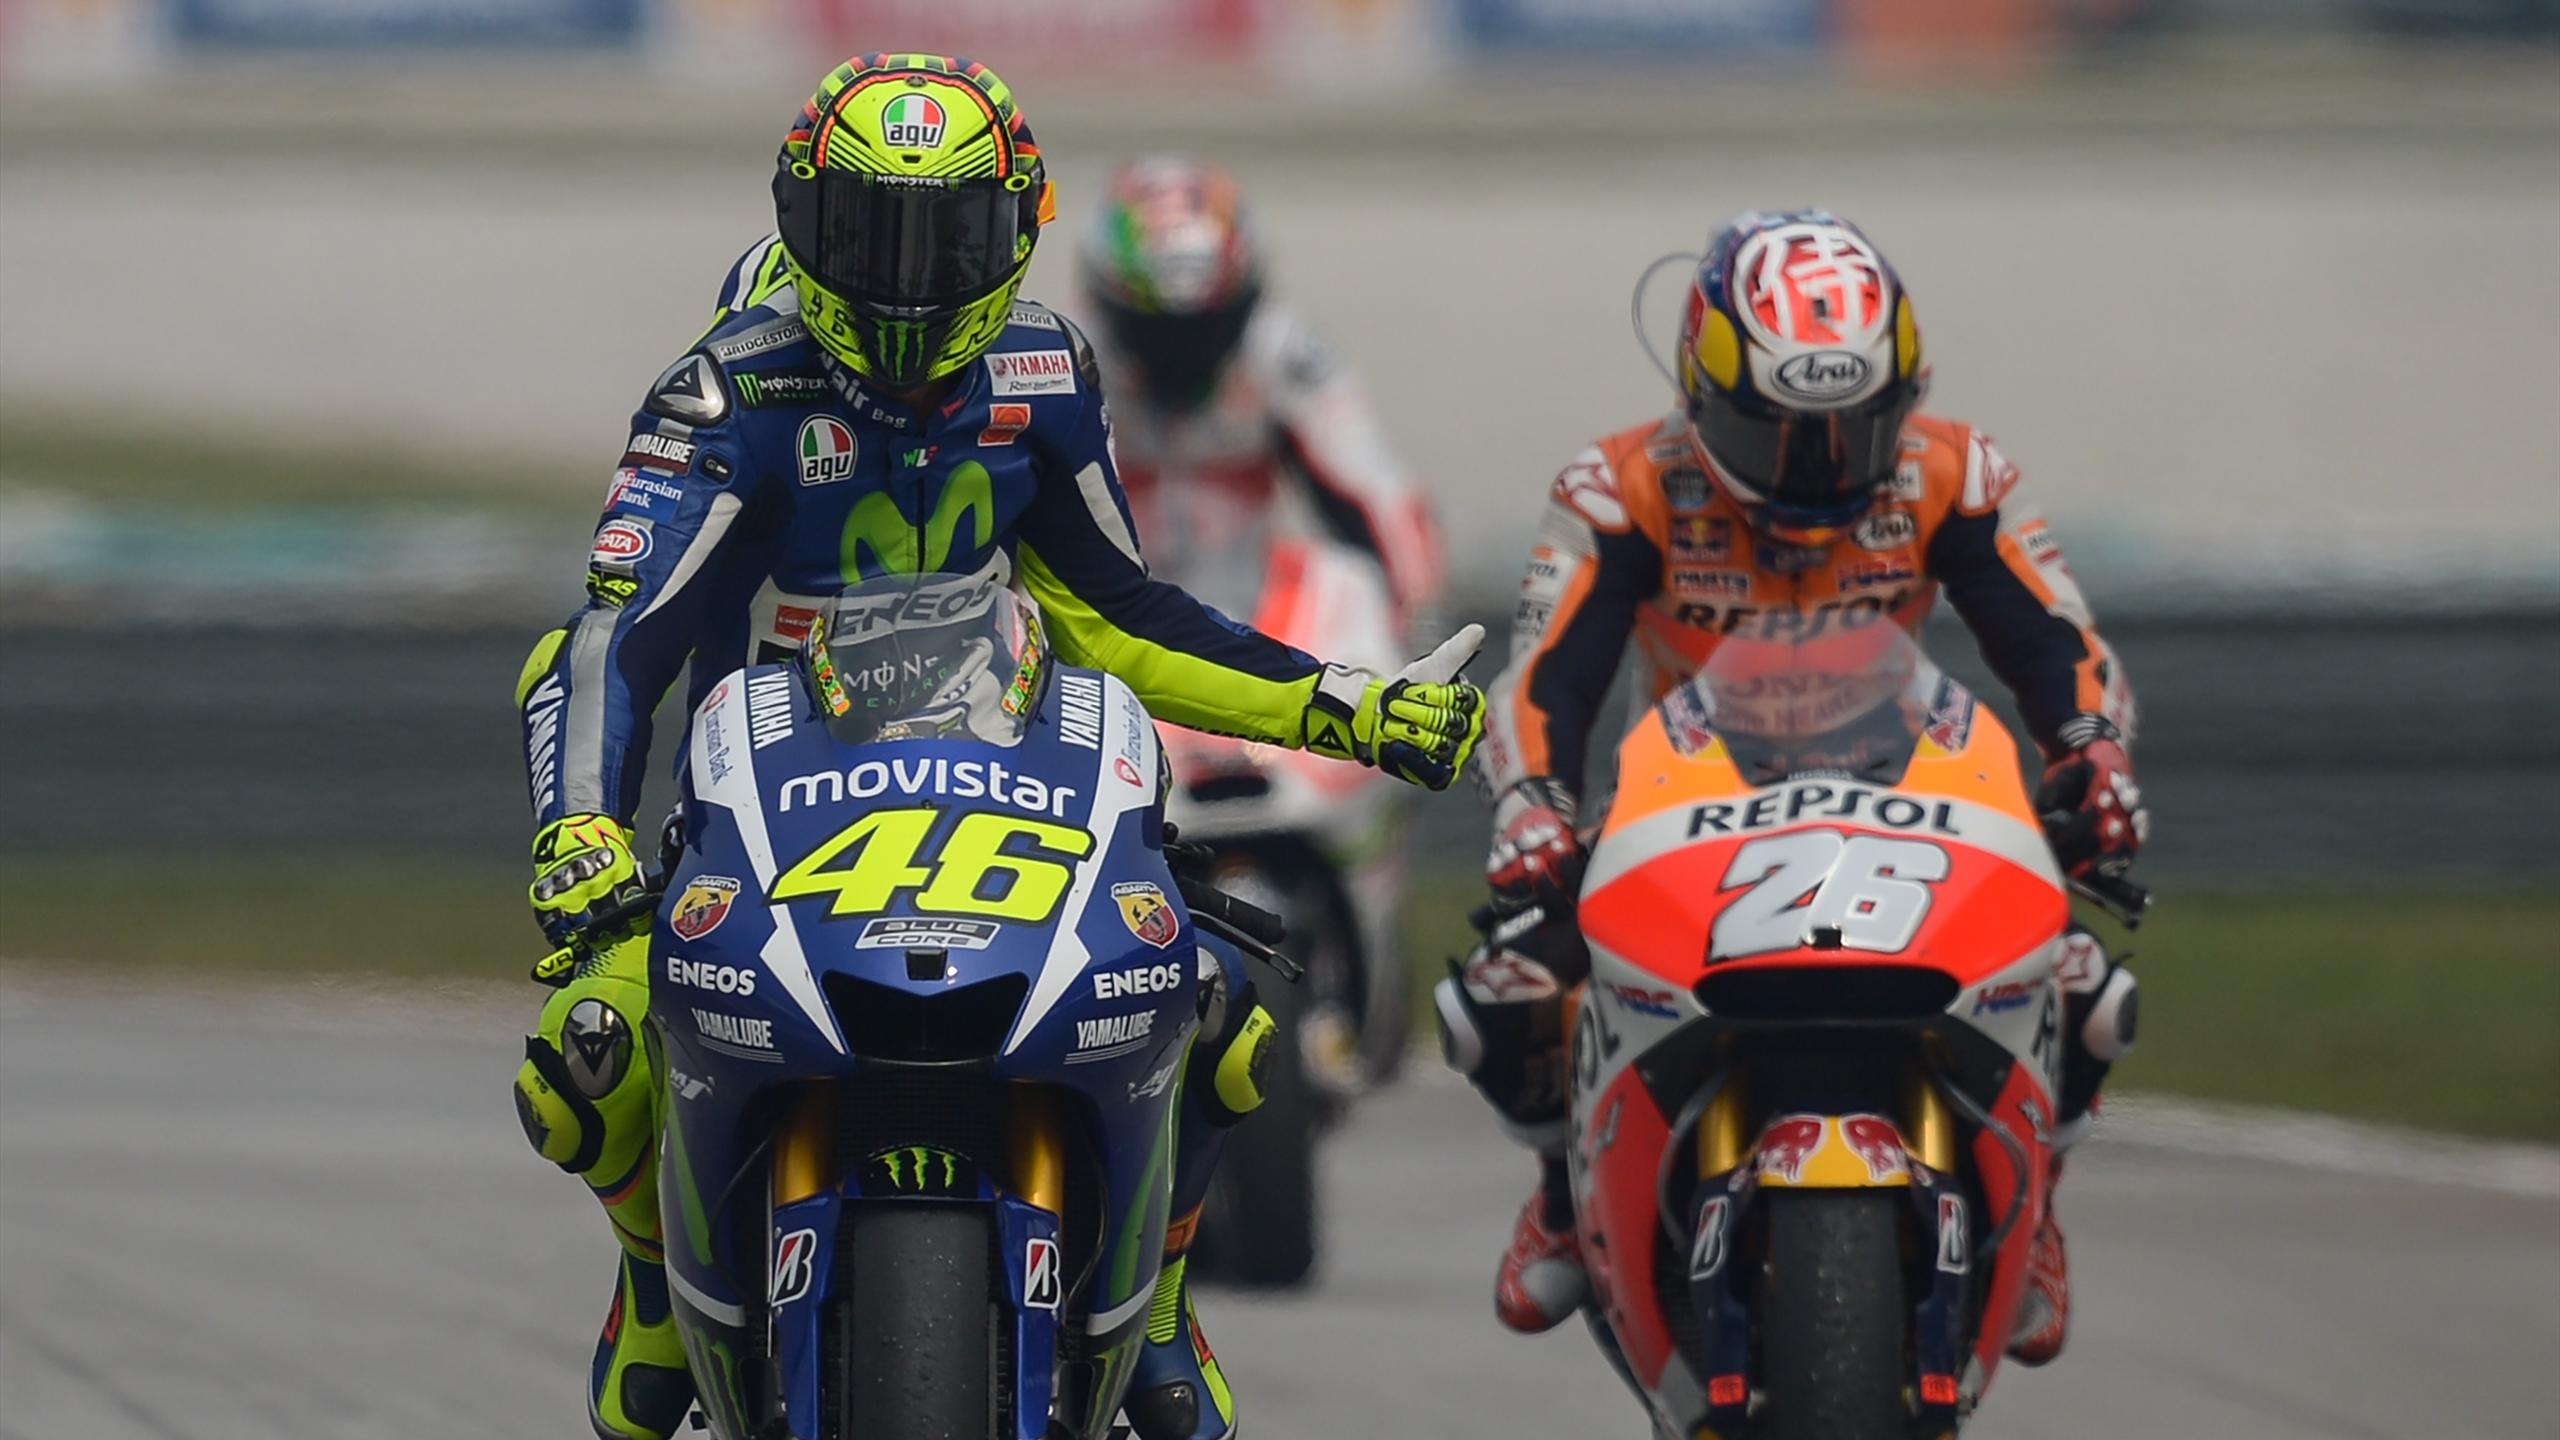 Movistar Yamaha MotoGP's Italian rider Valentino Rossi (L) gestures the thumbs up towards Repsol Honda Team's Spanish rider Dani Pedrosa (R) after the Malaysian Grand Prix MotoGP motorcycling race at the Sepang International Circuit on October 25, 2015